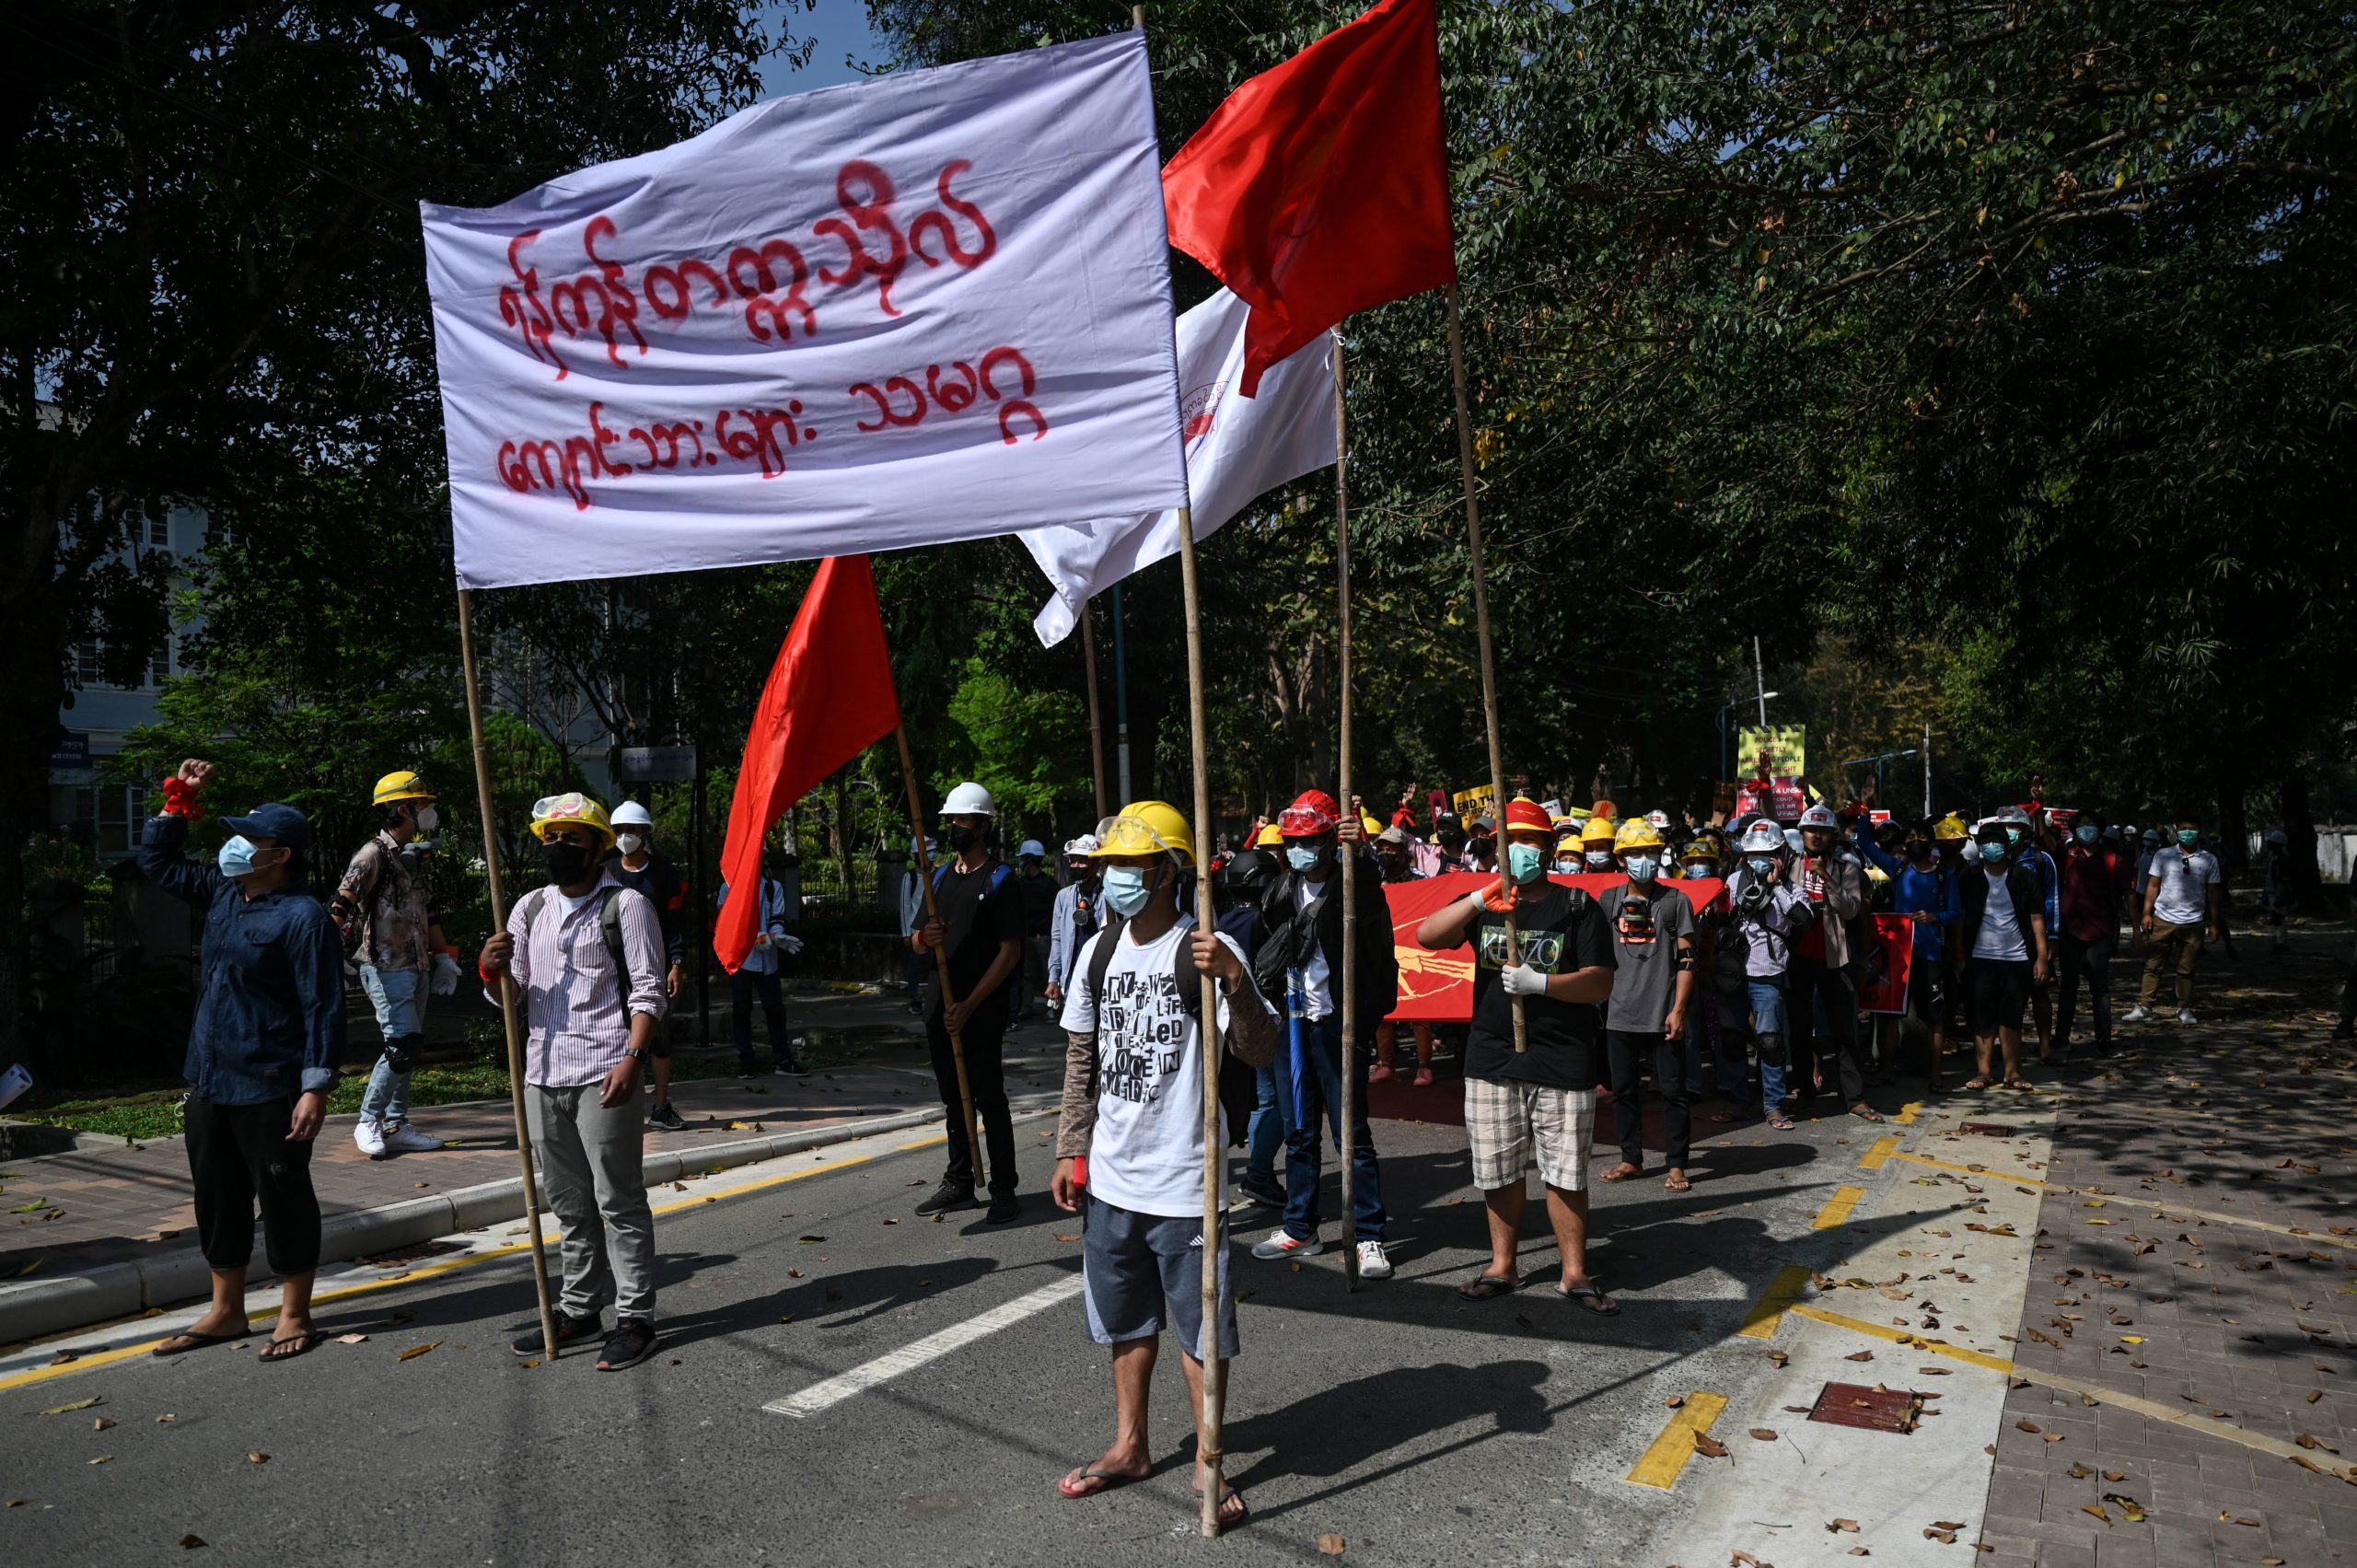 Students protest in the Yangon University compound against the military coup in Yangon on February 25, 2021. (YE AUNG THU/AFP via Getty Images)